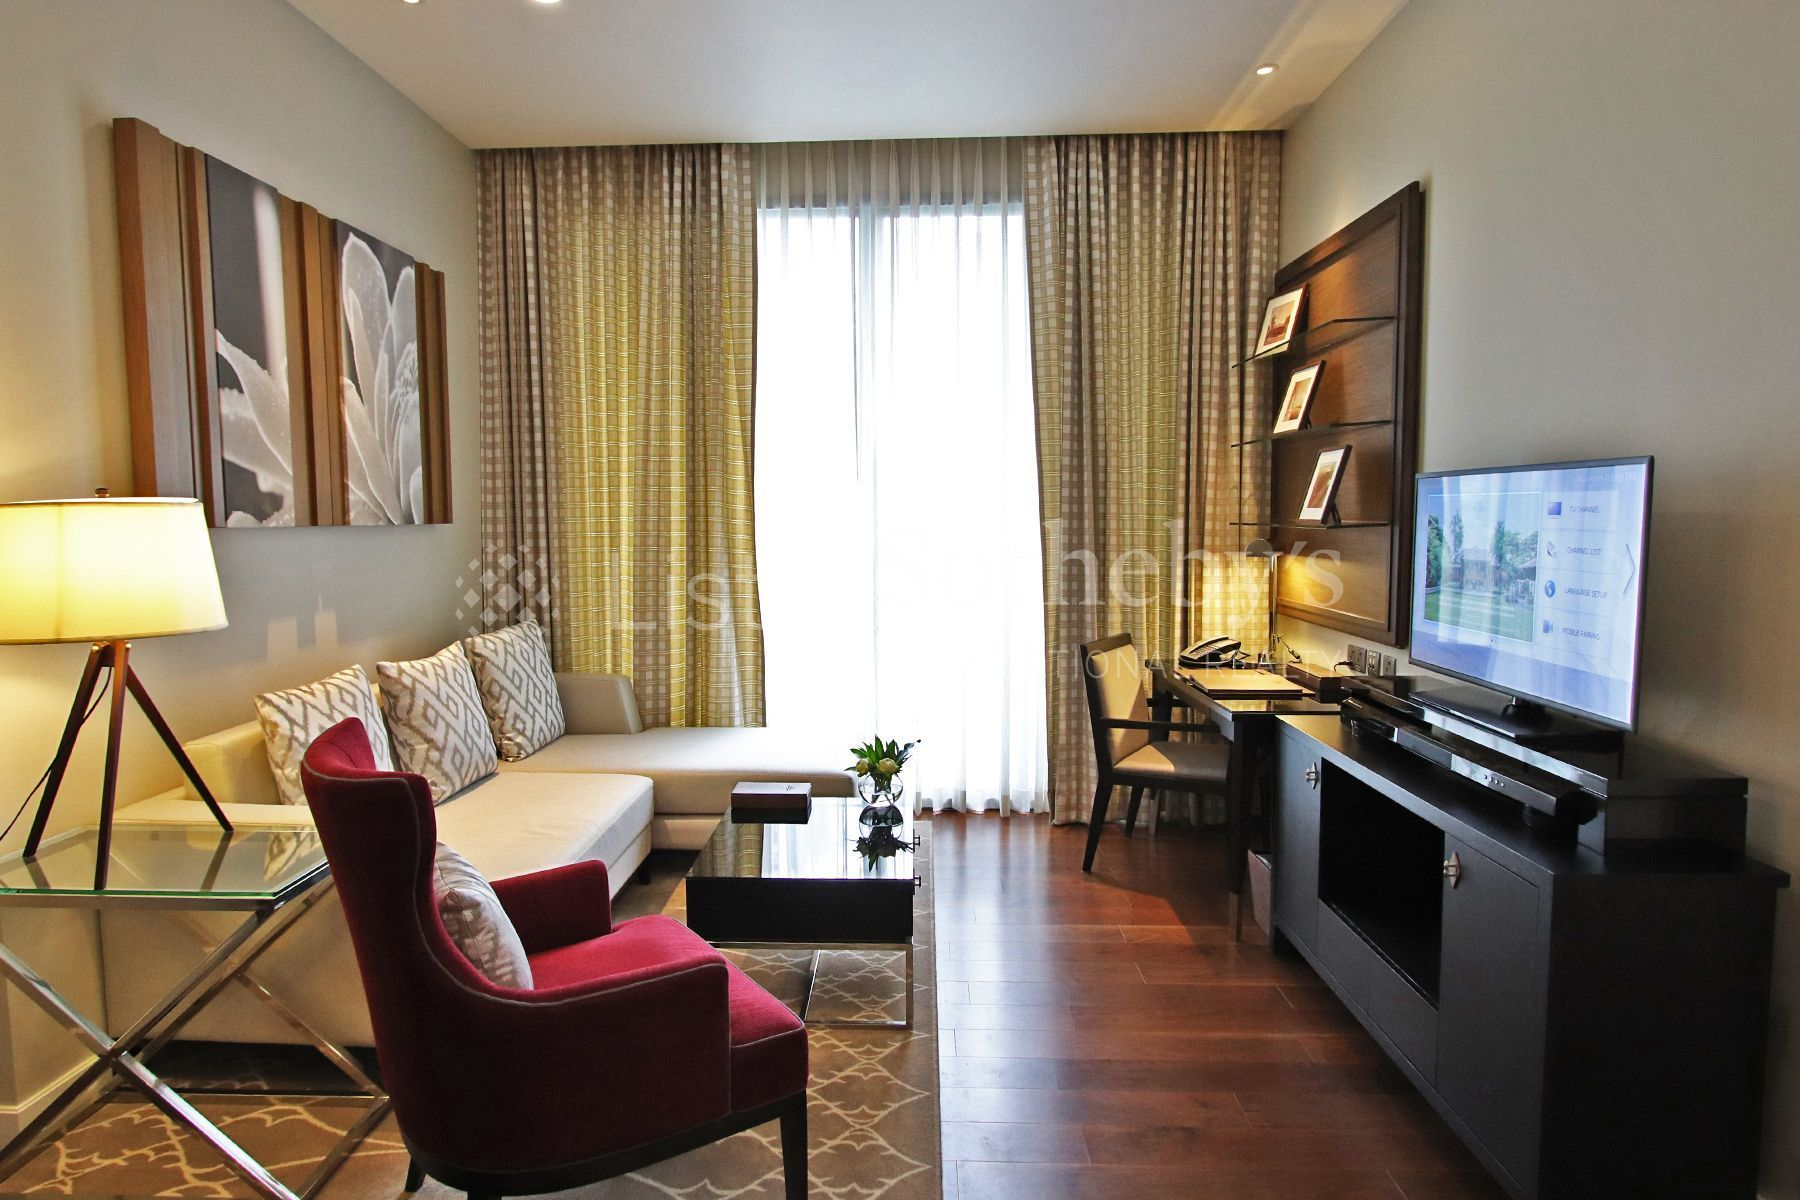 the-pillars-executive-one-bedroom-137-pillars-suites-residences-bangkok 2